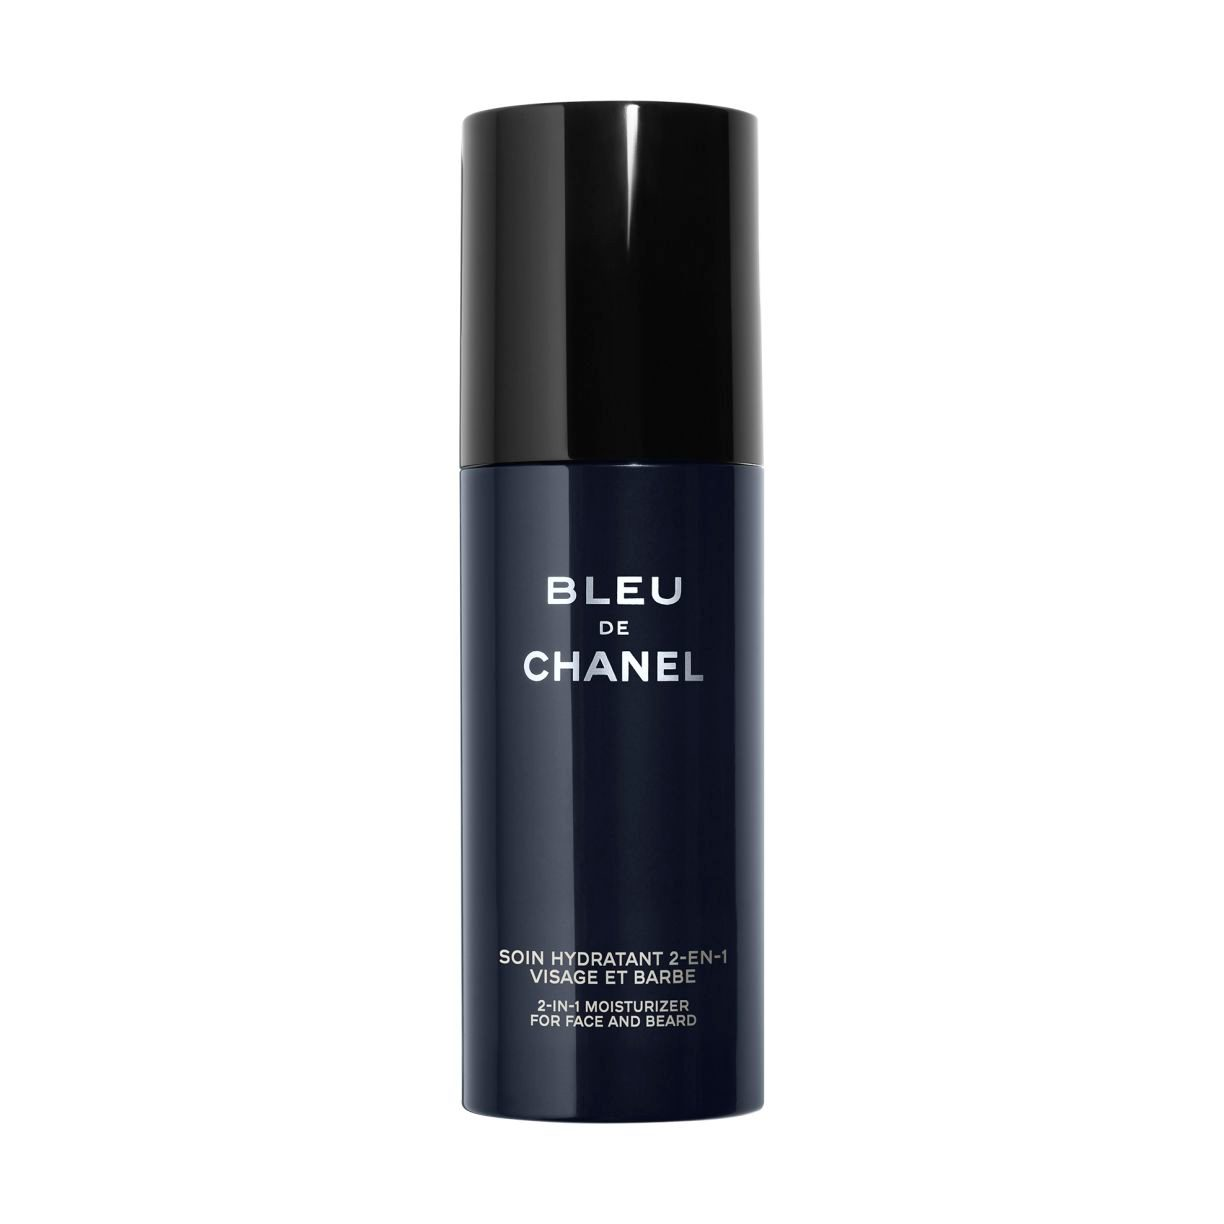 BLEU DE CHANEL 2-IN-1 MOISTURIZER FOR FACE AND BEARD 50ml